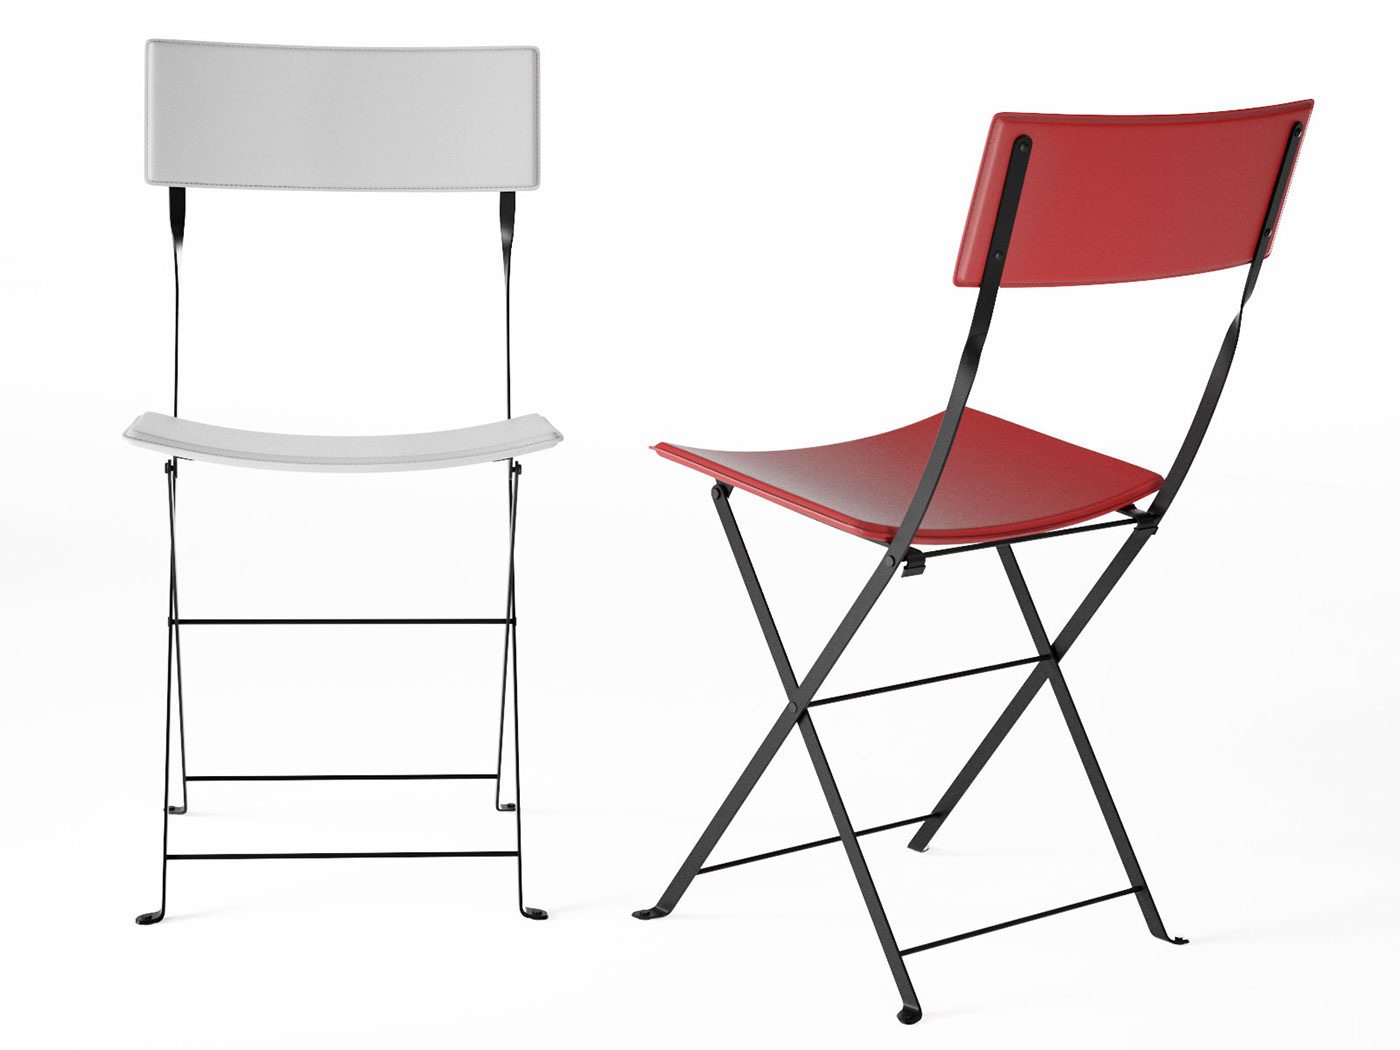 freebie Ligne Roset sellier chair dining chair FREE 3d model CG Content design connected